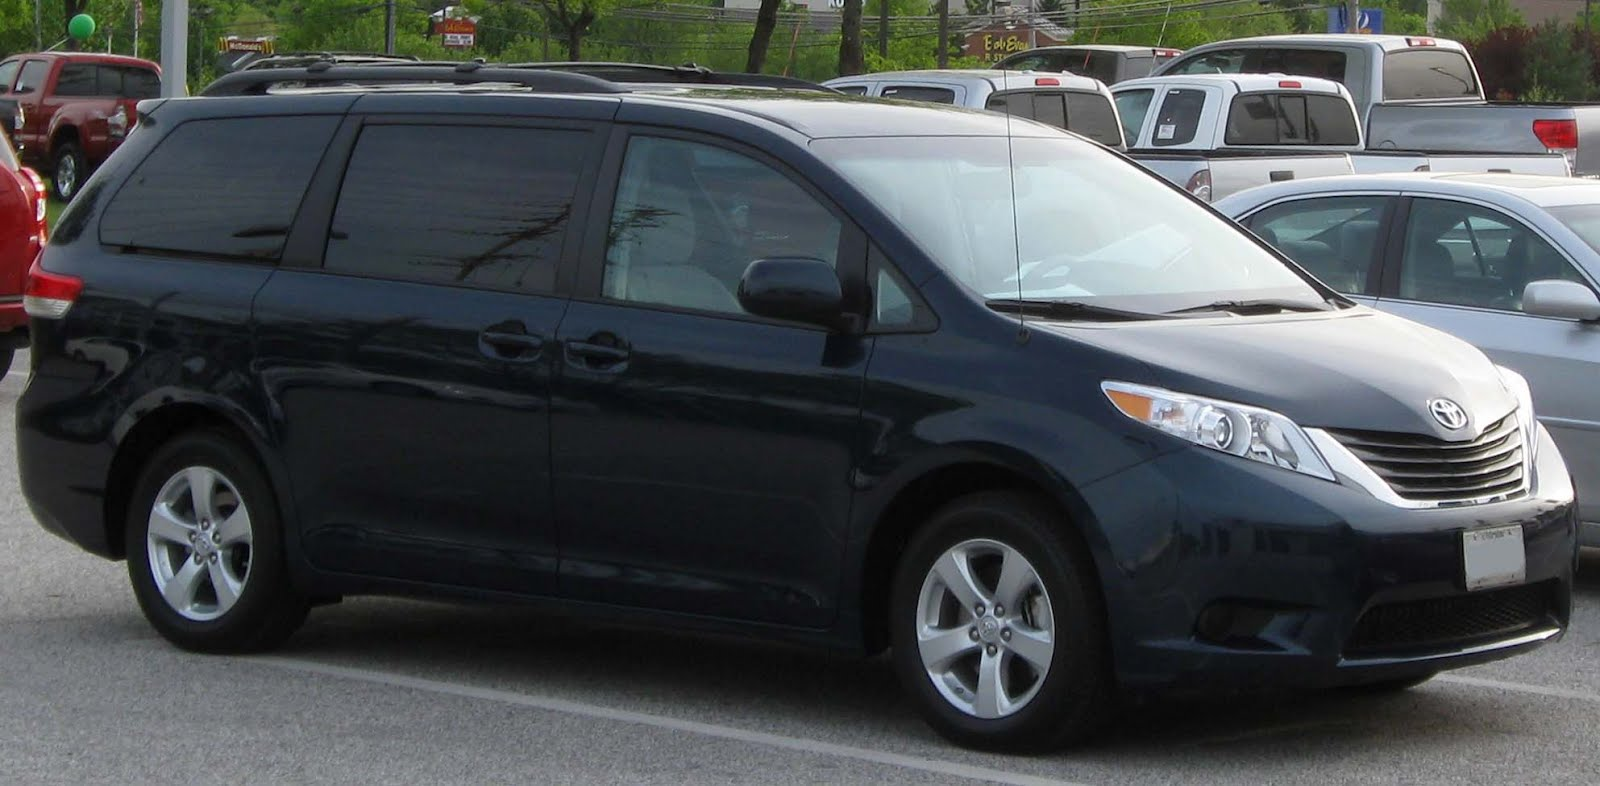 Toyota Sienna 2010-2018 Owners Manual: Before refueling the vehicle